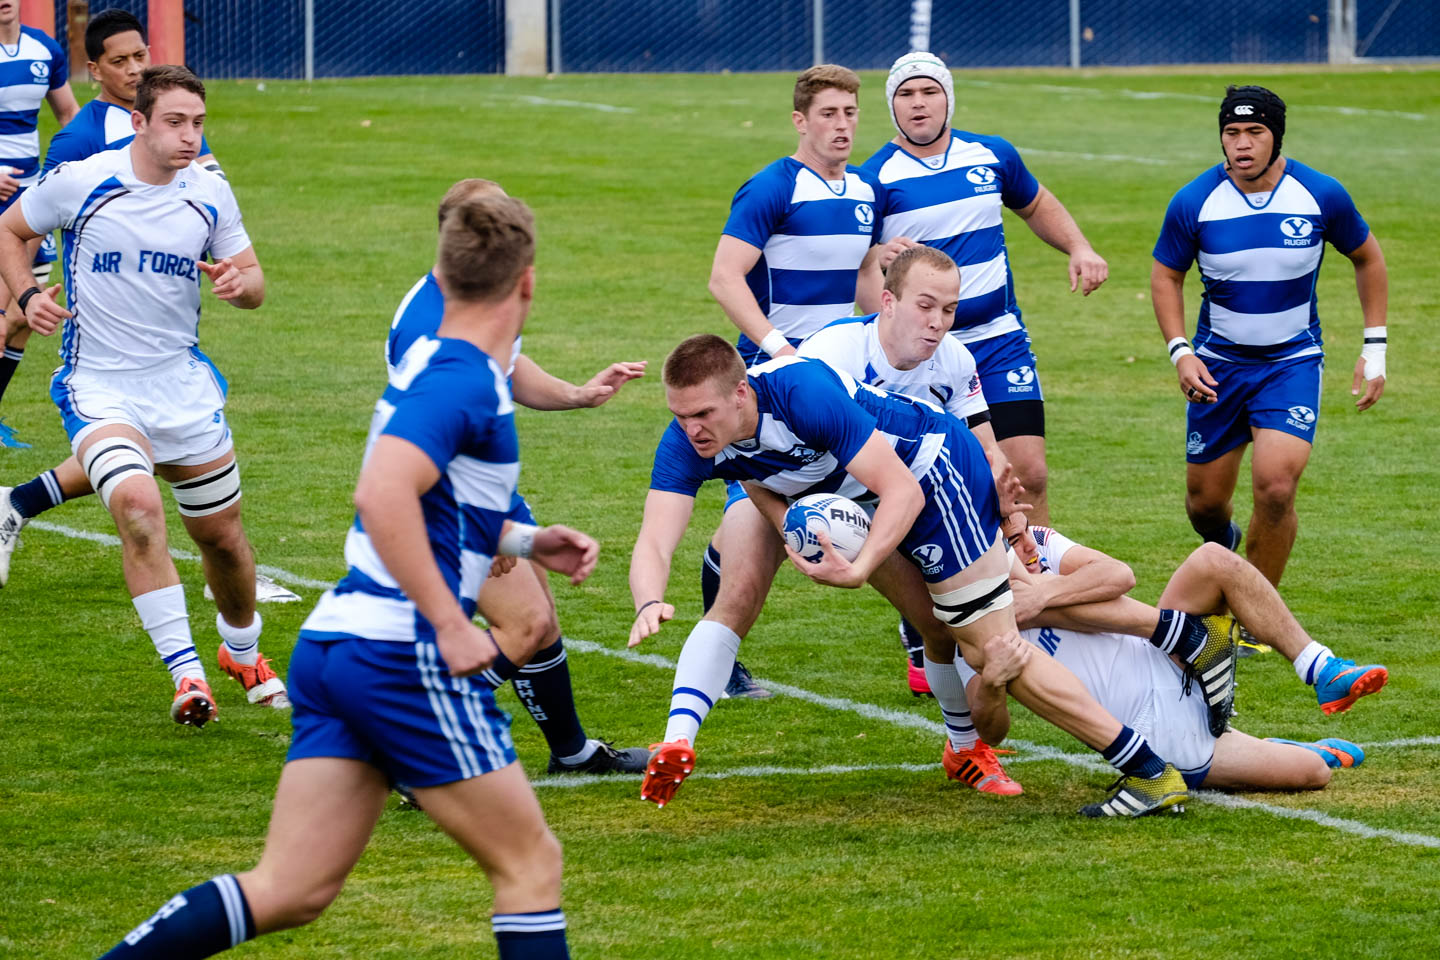 BYU Rugby runs the ball